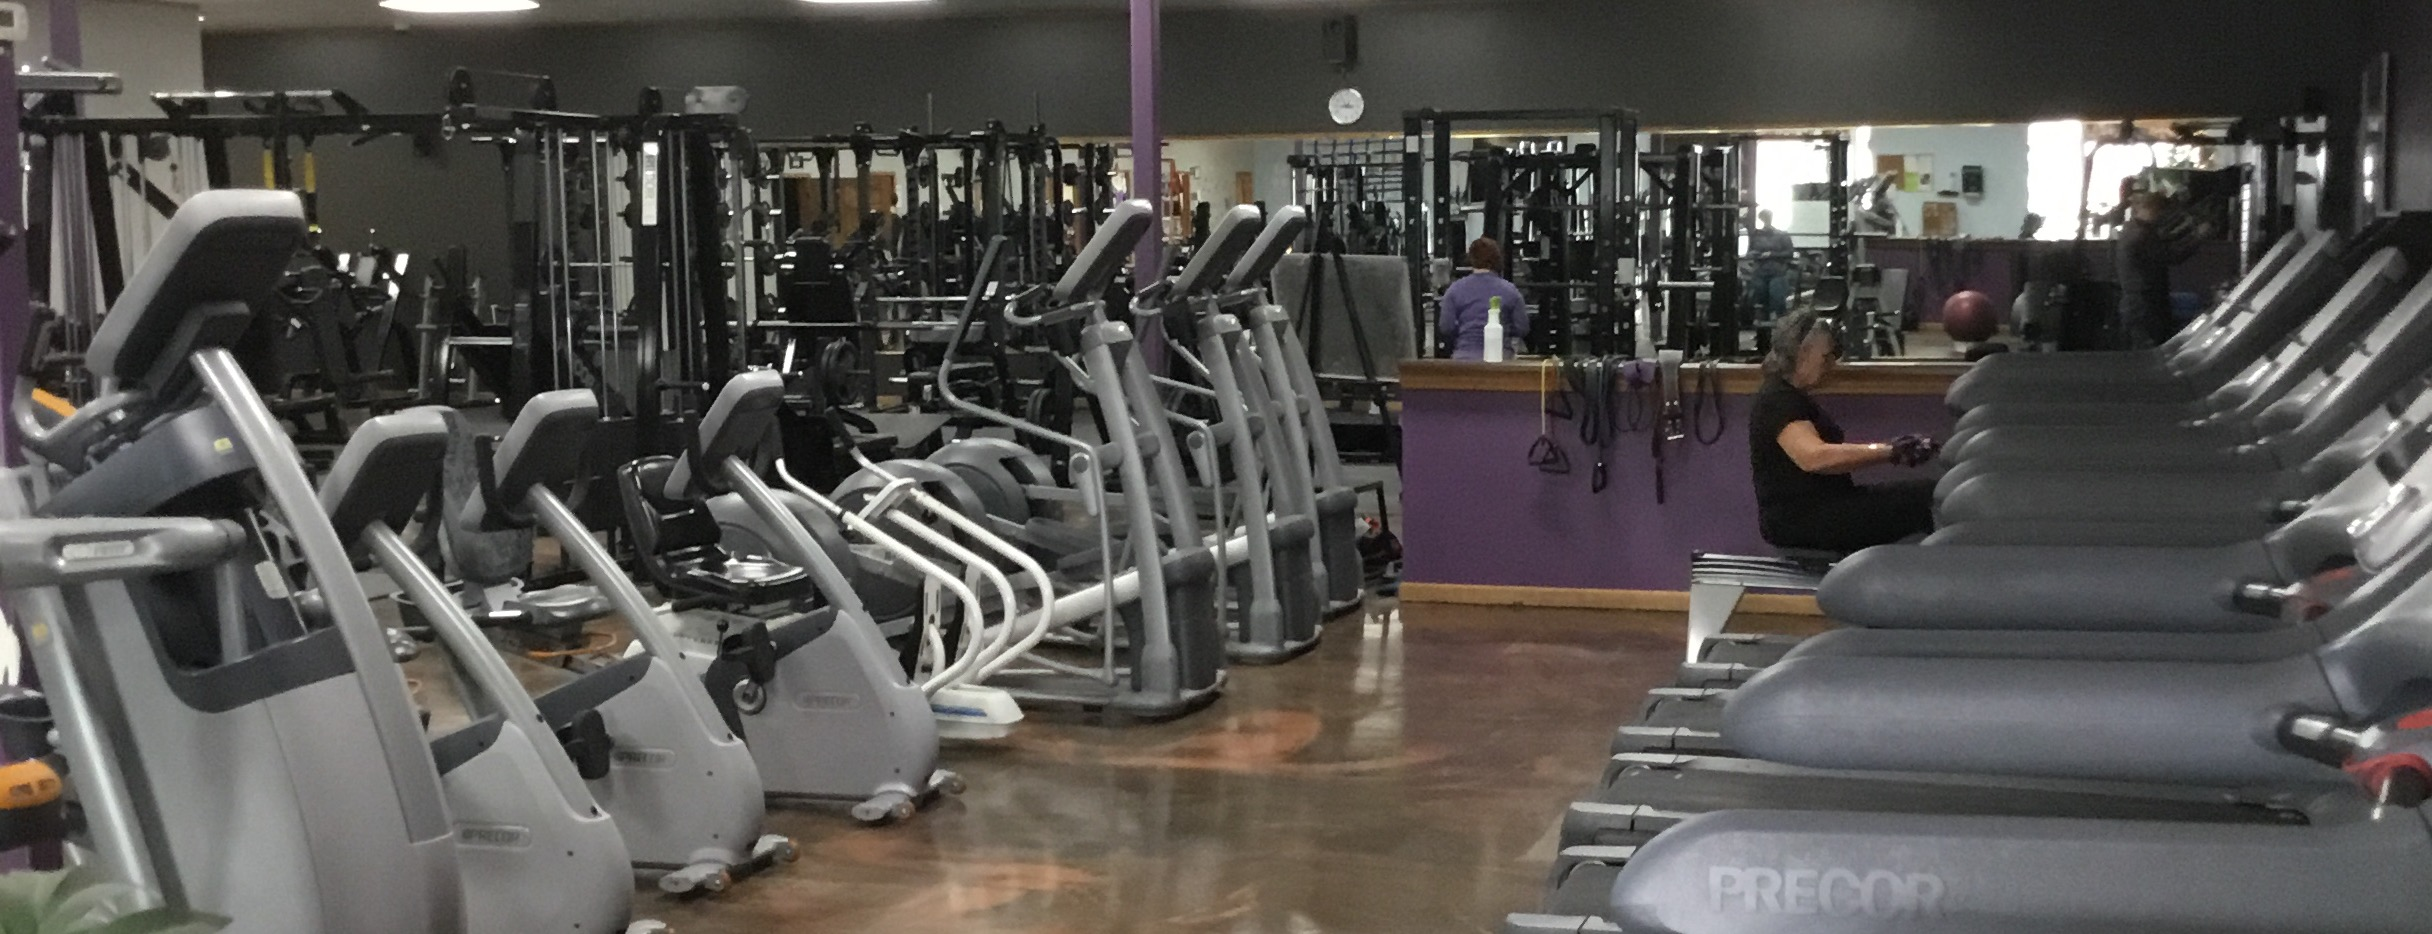 Anytime Fitness - Gym in North Vernon, IN 47265